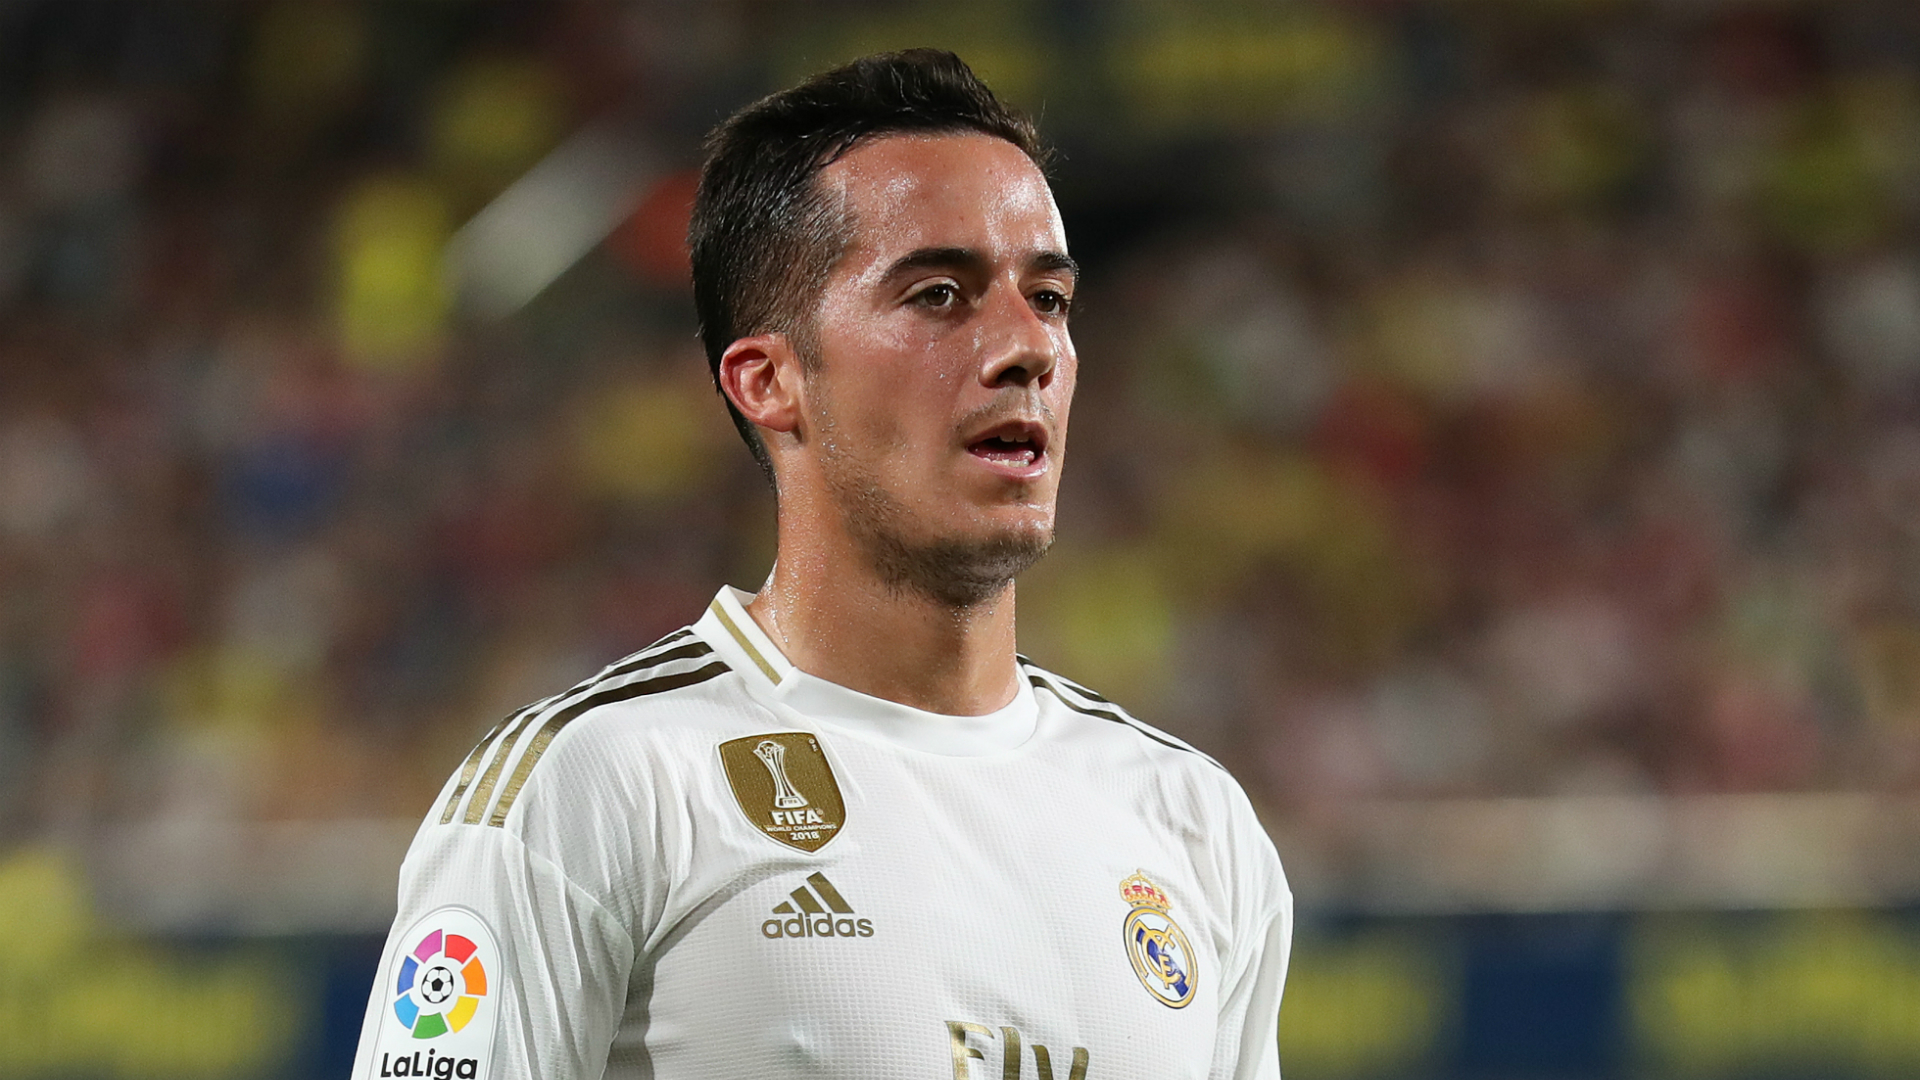 Manchester United contract for Lucas Vazquez emerges ahead of potential summer transfer - Bóng Đá